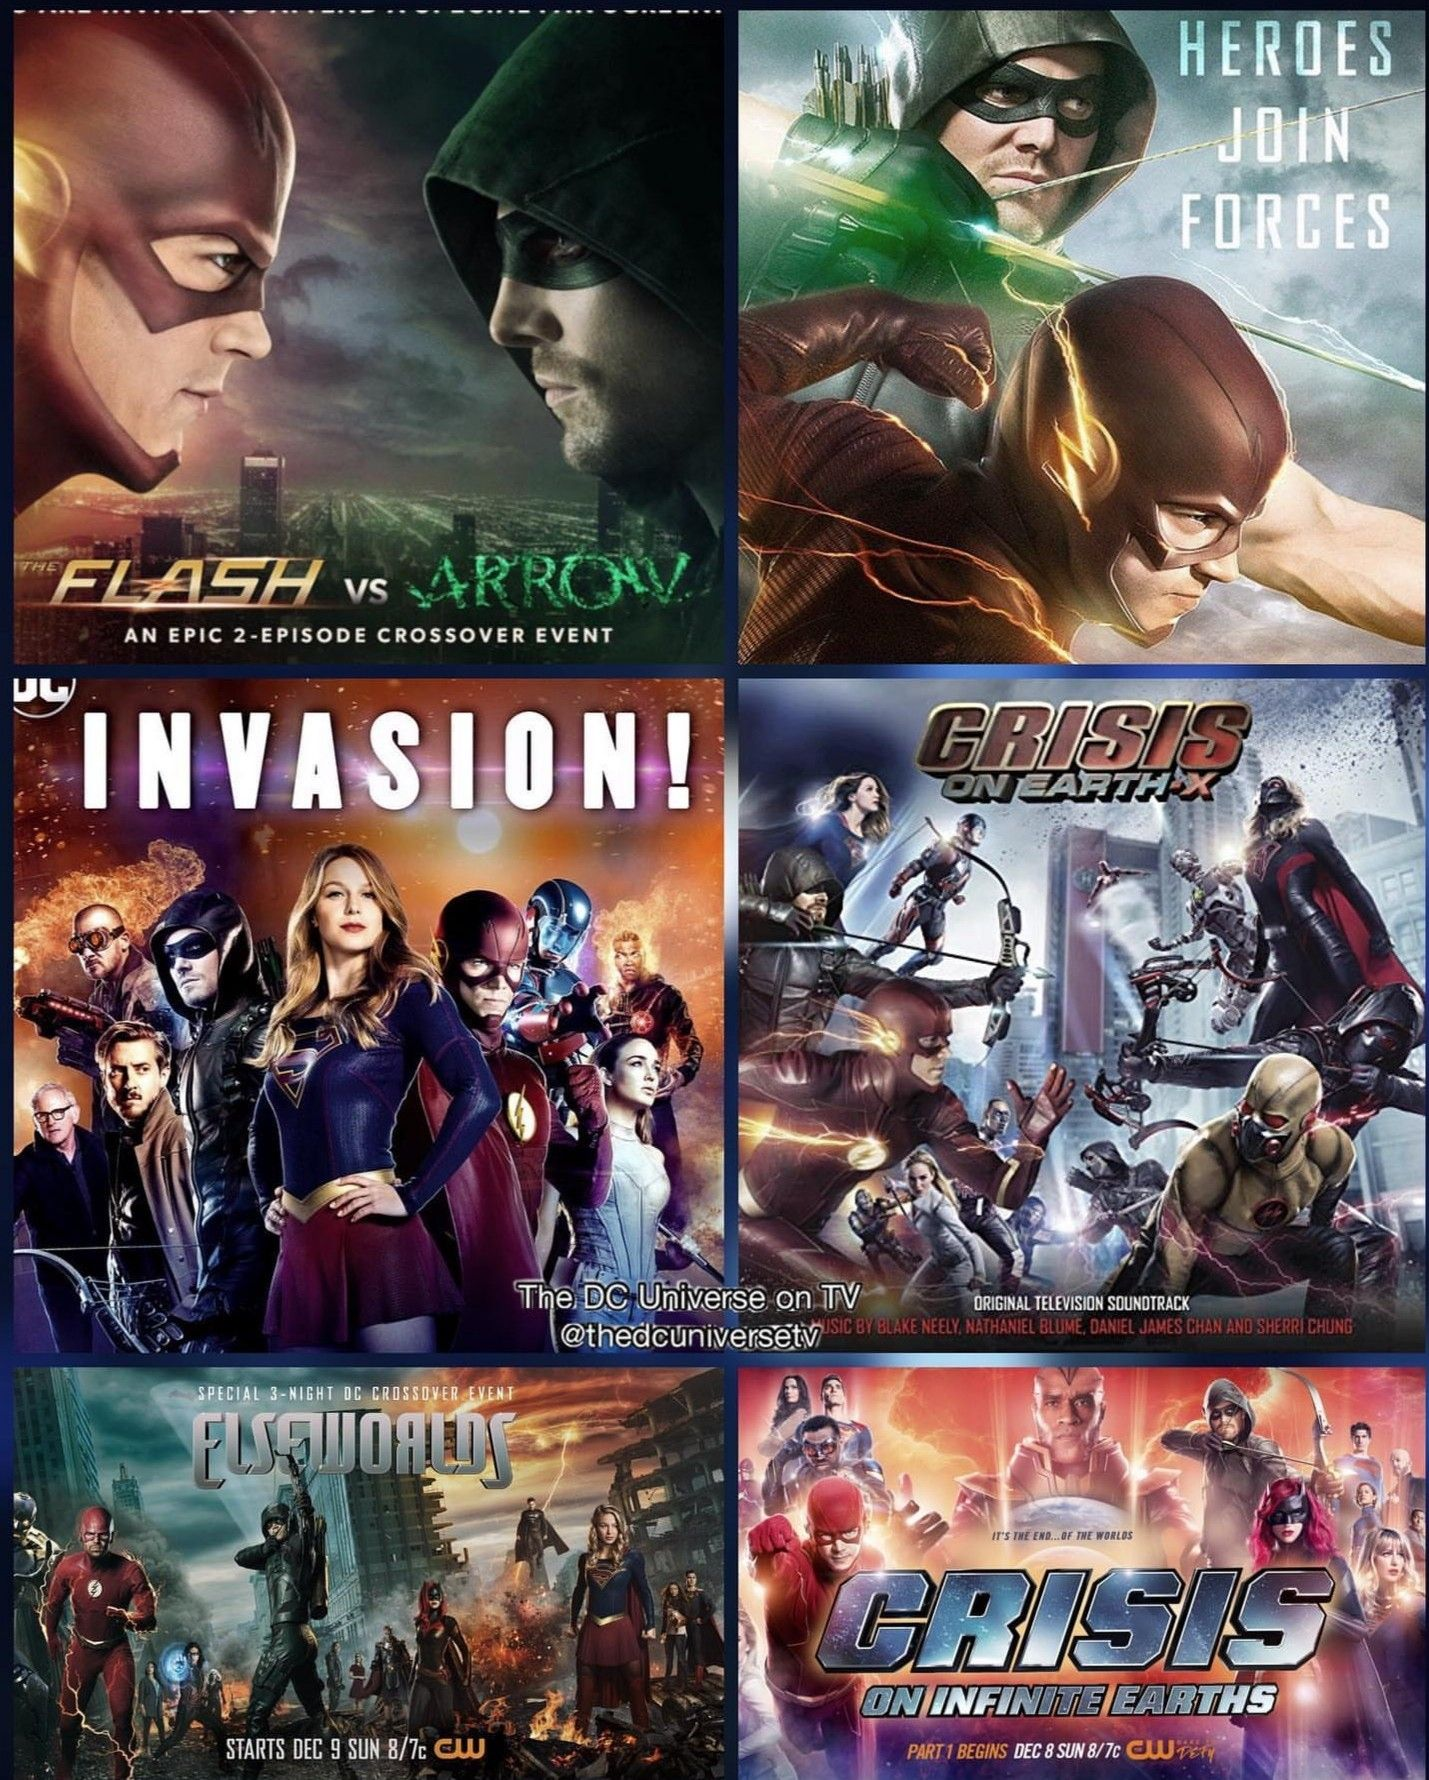 Pin By Neesie T On Arrowverse With Images Dc Universe Flash